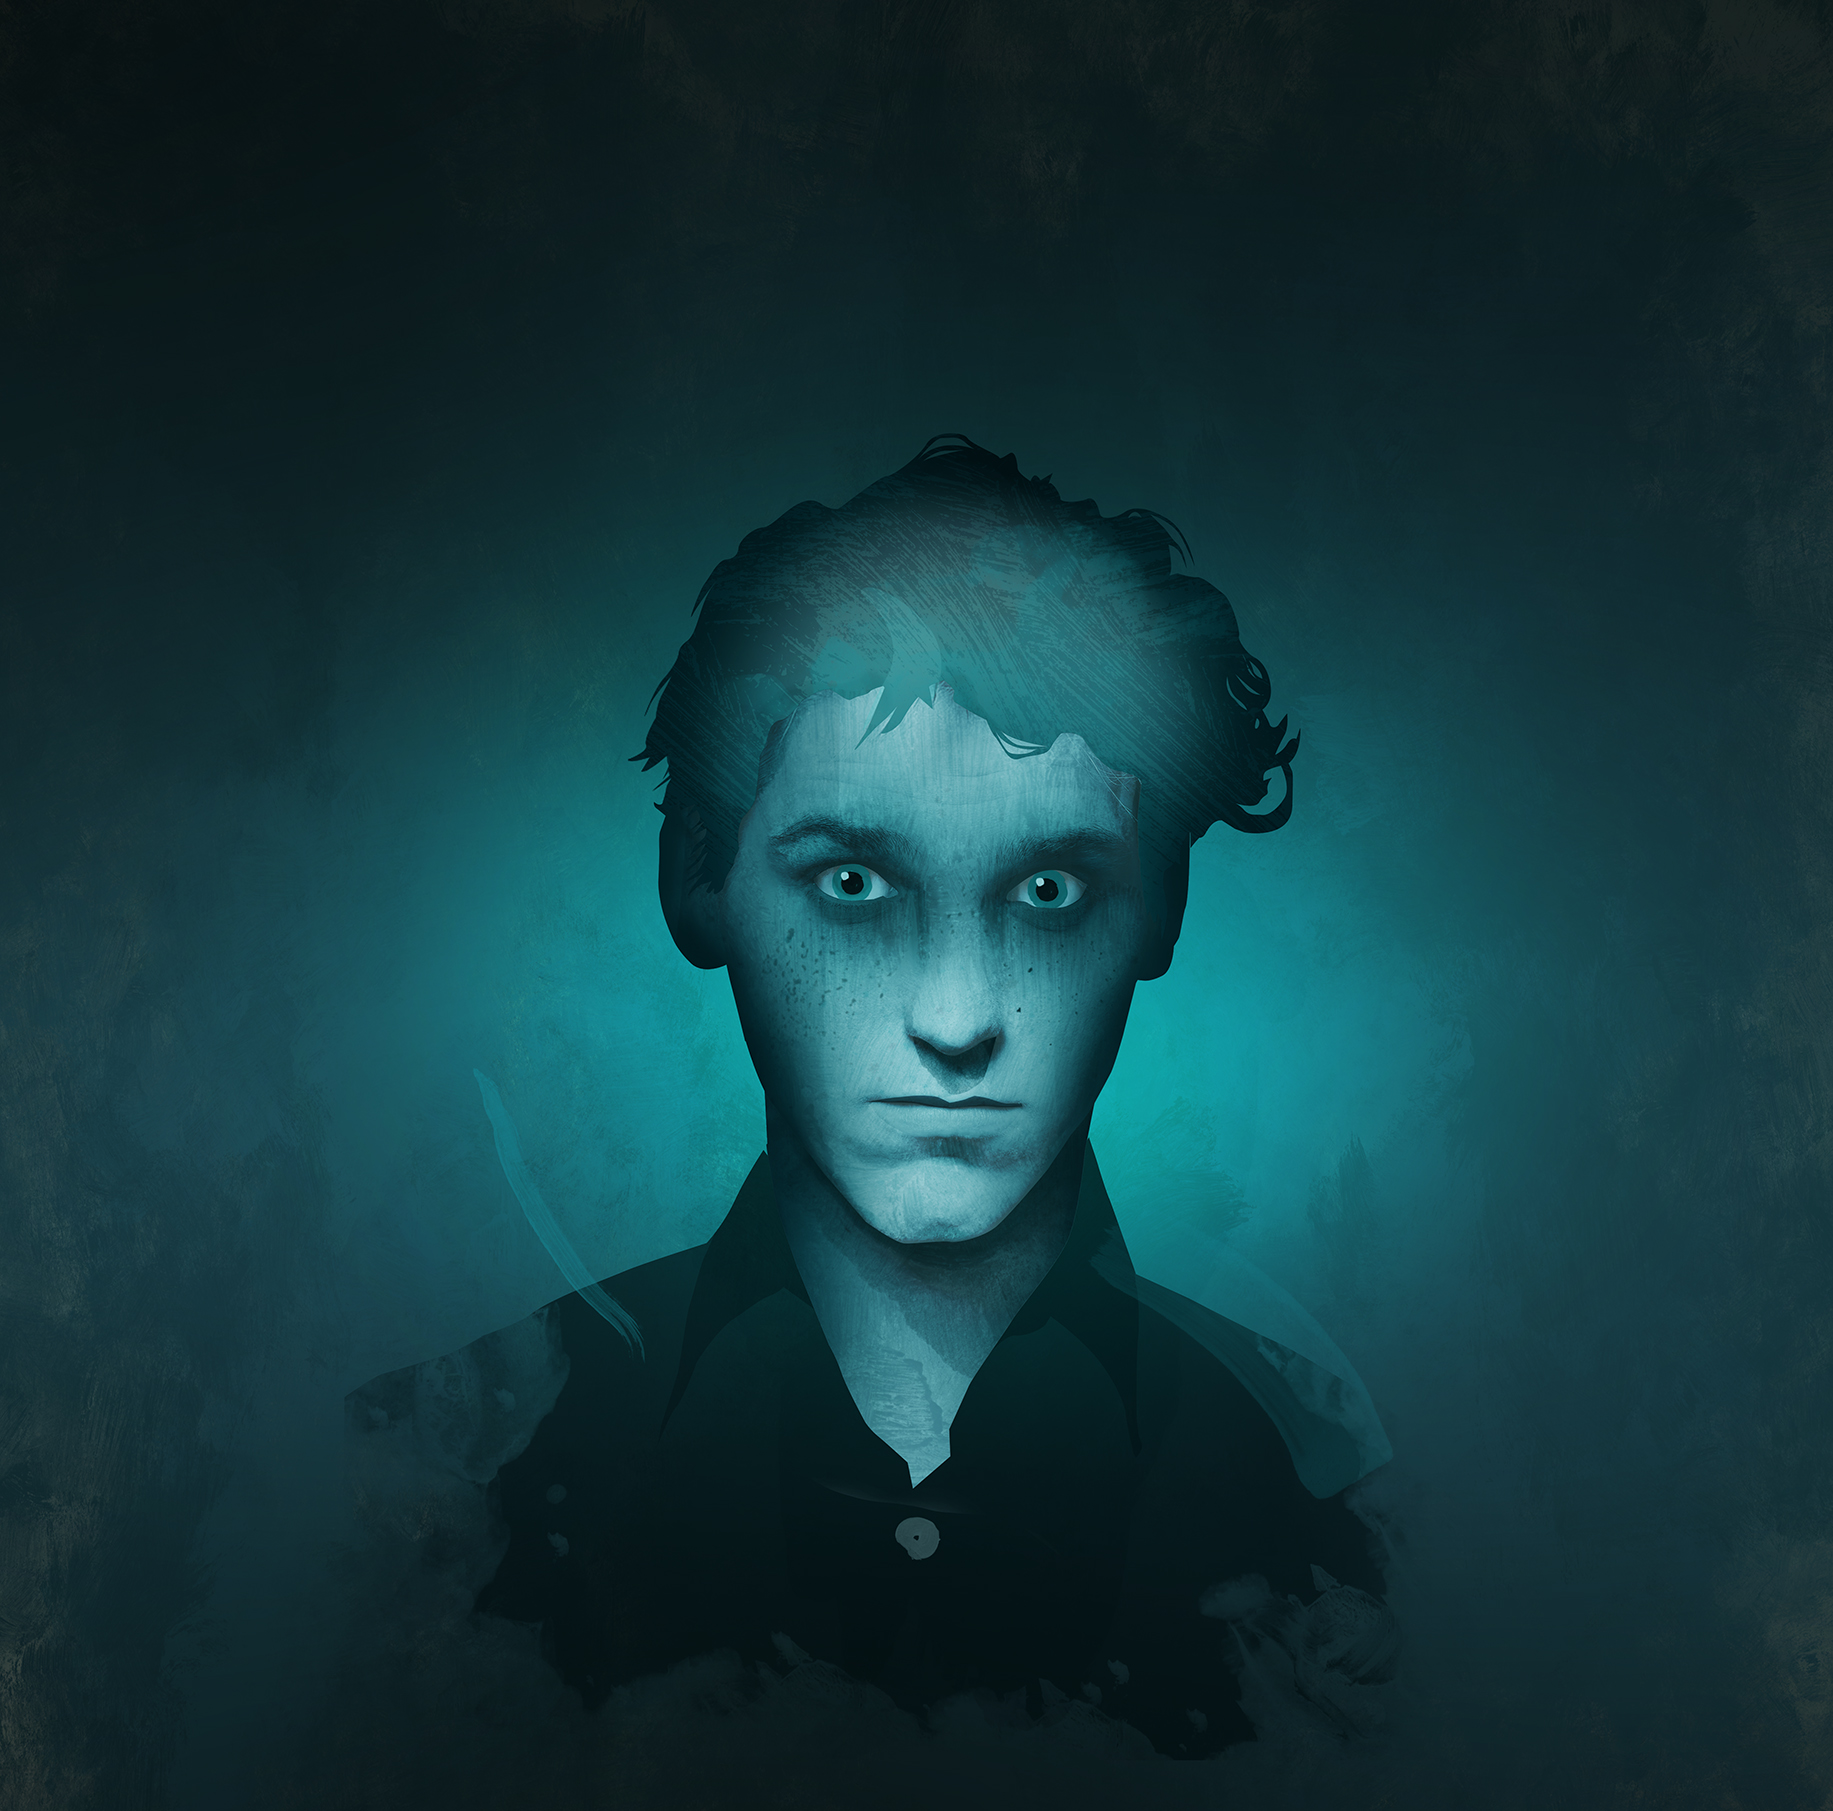 Illustration of Barty Crouch Jr